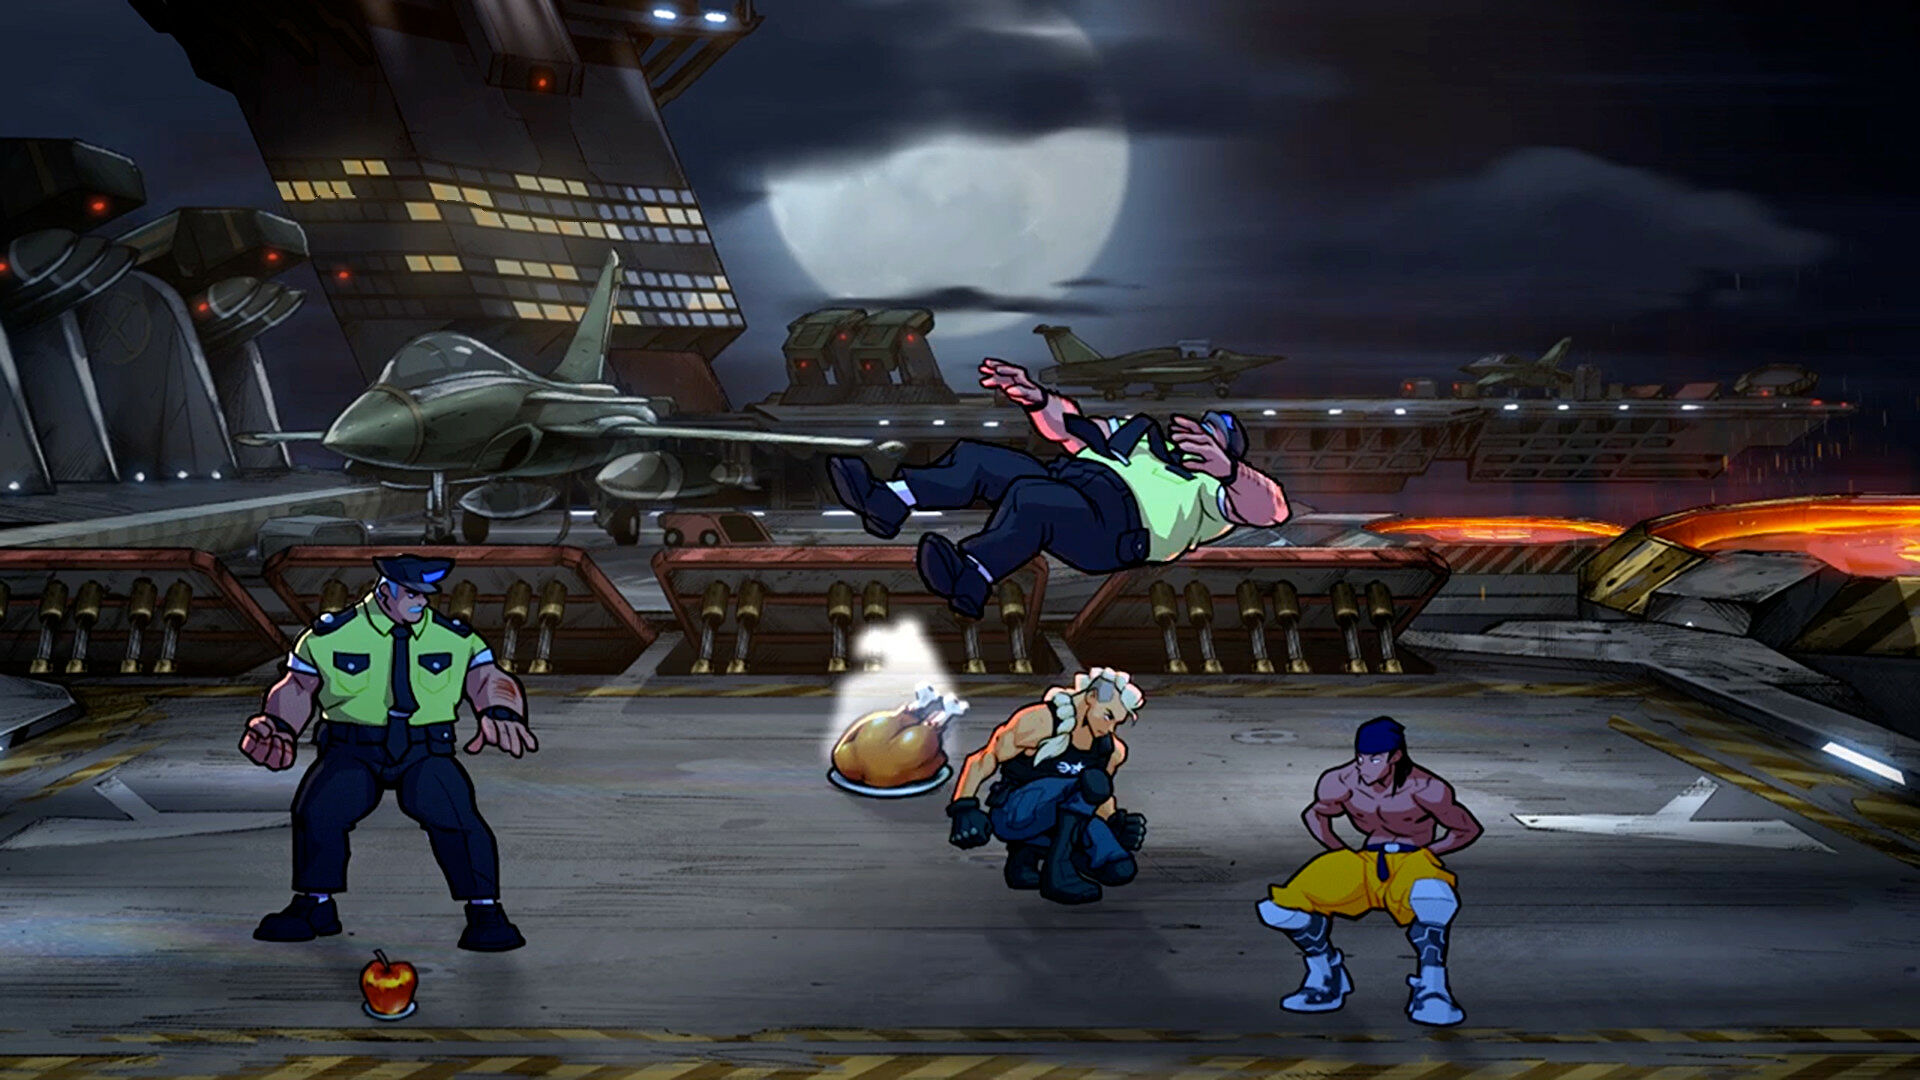 Streets Of Rage 4's Mr. X Nightmare DLC will add 3 new characters